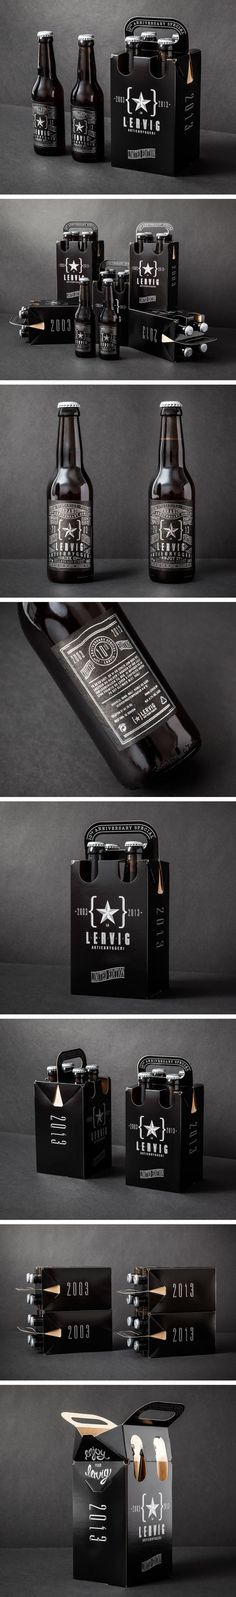 Lervig Anniversary by Daniel Brokstad PD (Bottle Packaging) Cool Packaging, Beverage Packaging, Bottle Packaging, Brand Packaging, Beer Label Design, Beer Brands, Design Poster, Bottle Design, Packaging Design Inspiration